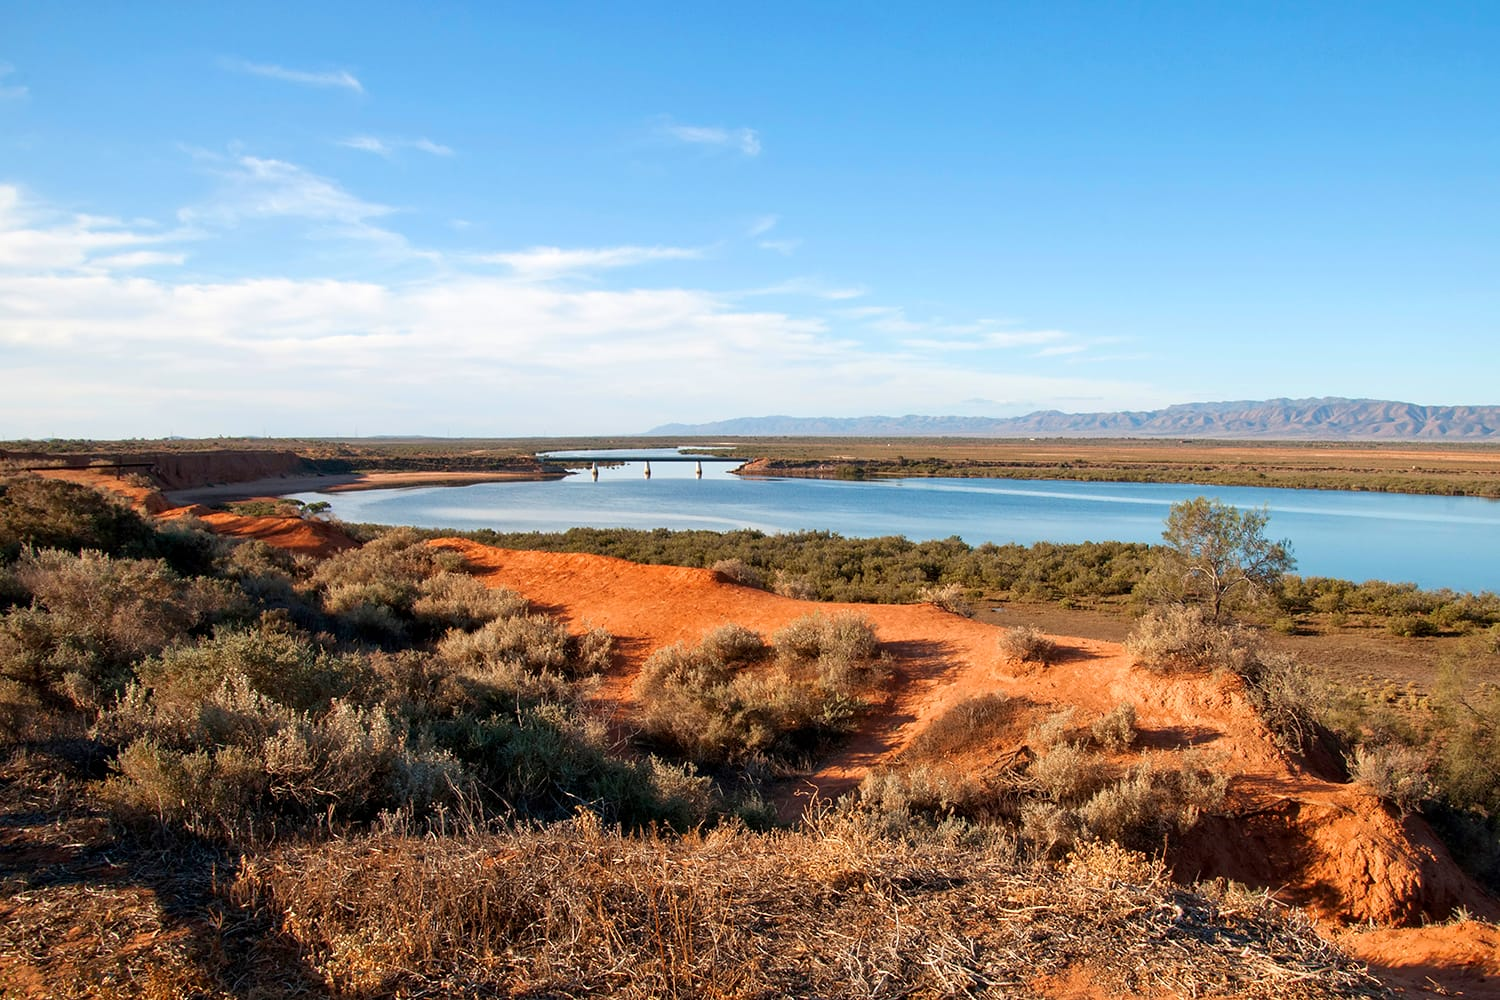 Port Augusta South Australia, termination of Spencer Gulf surrounded by desert landscape